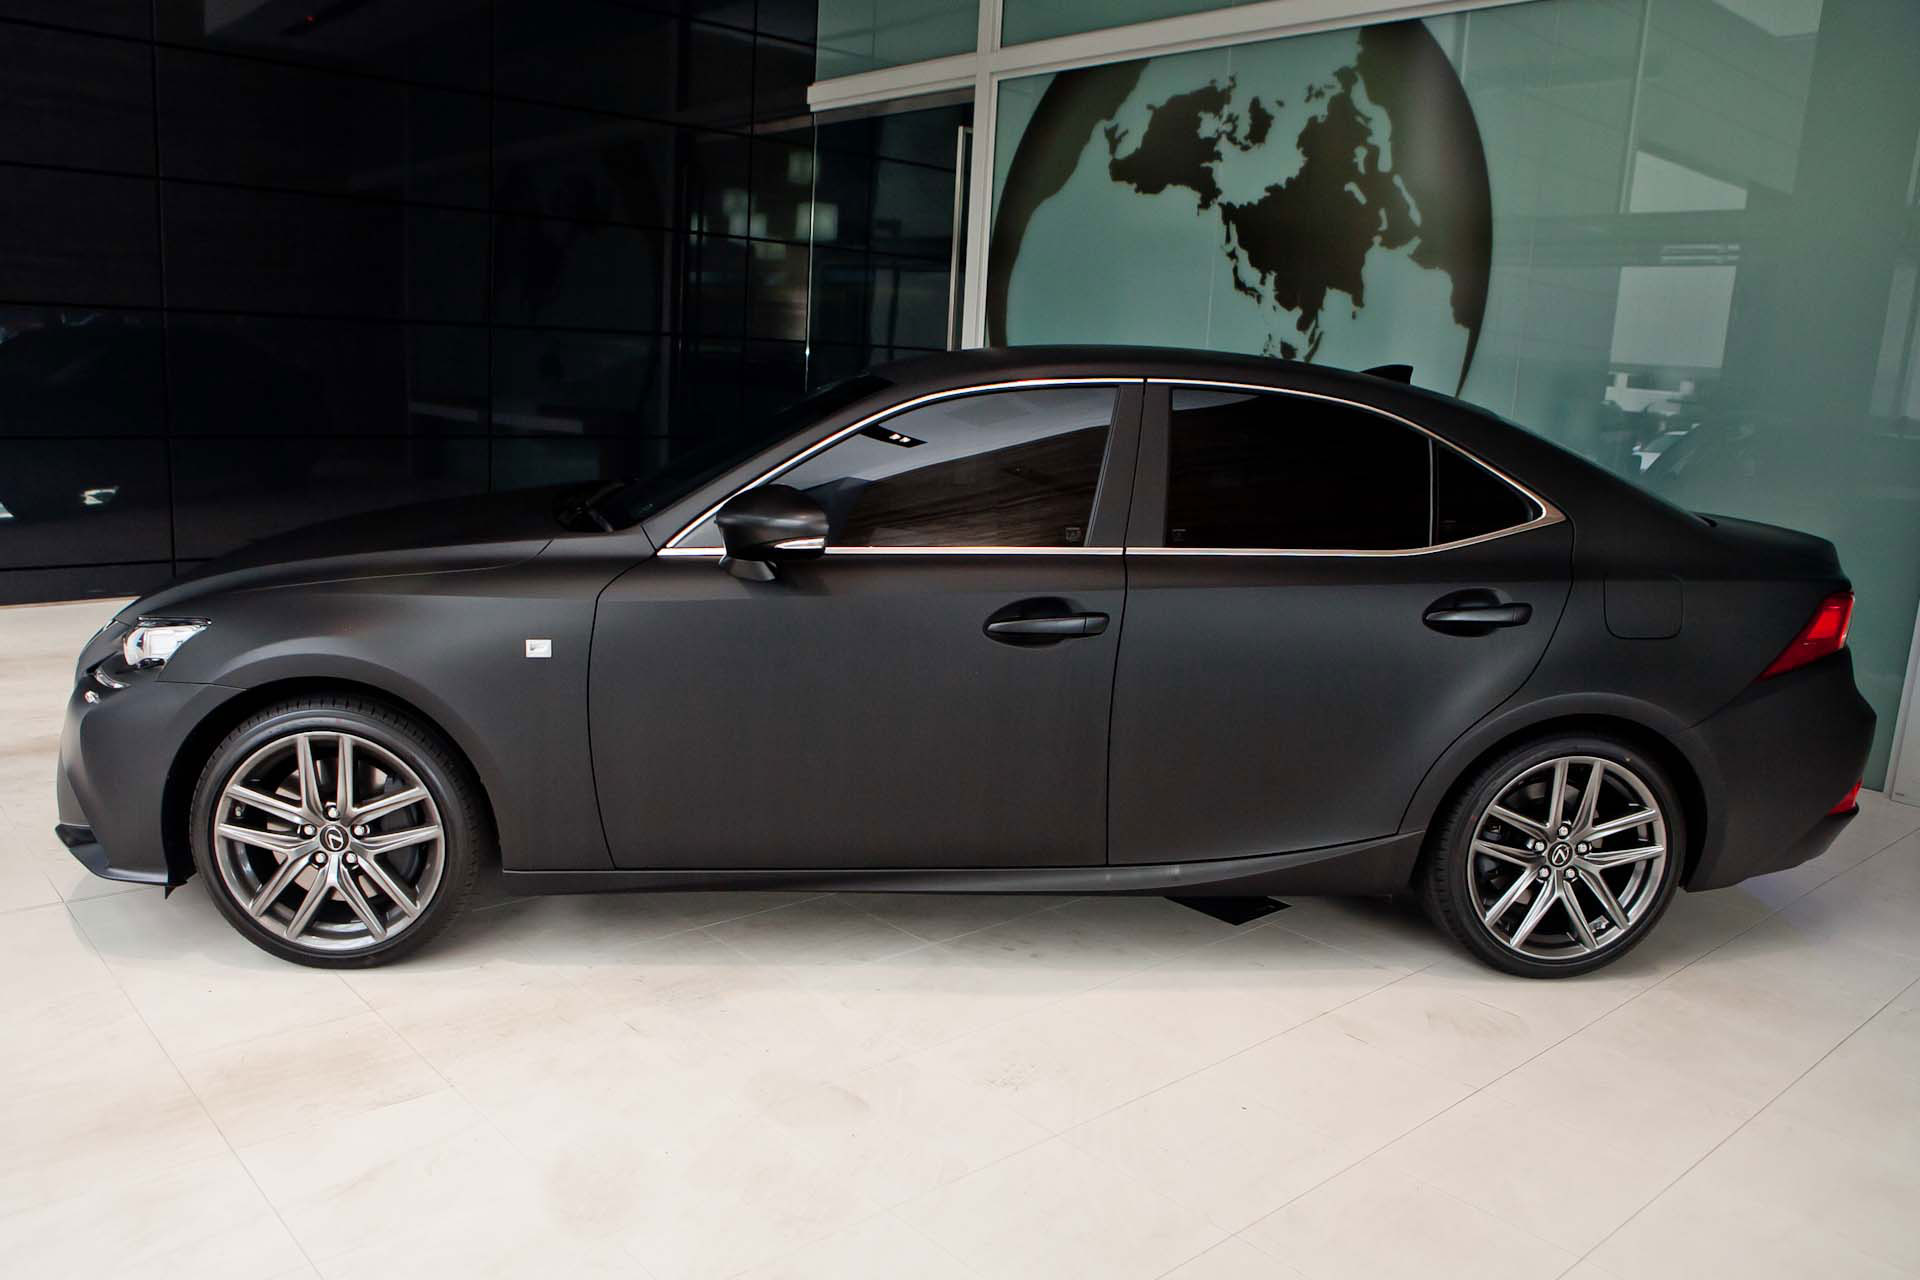 2014 Lexus IS Launched with Matte Black Wrap in Australia ...